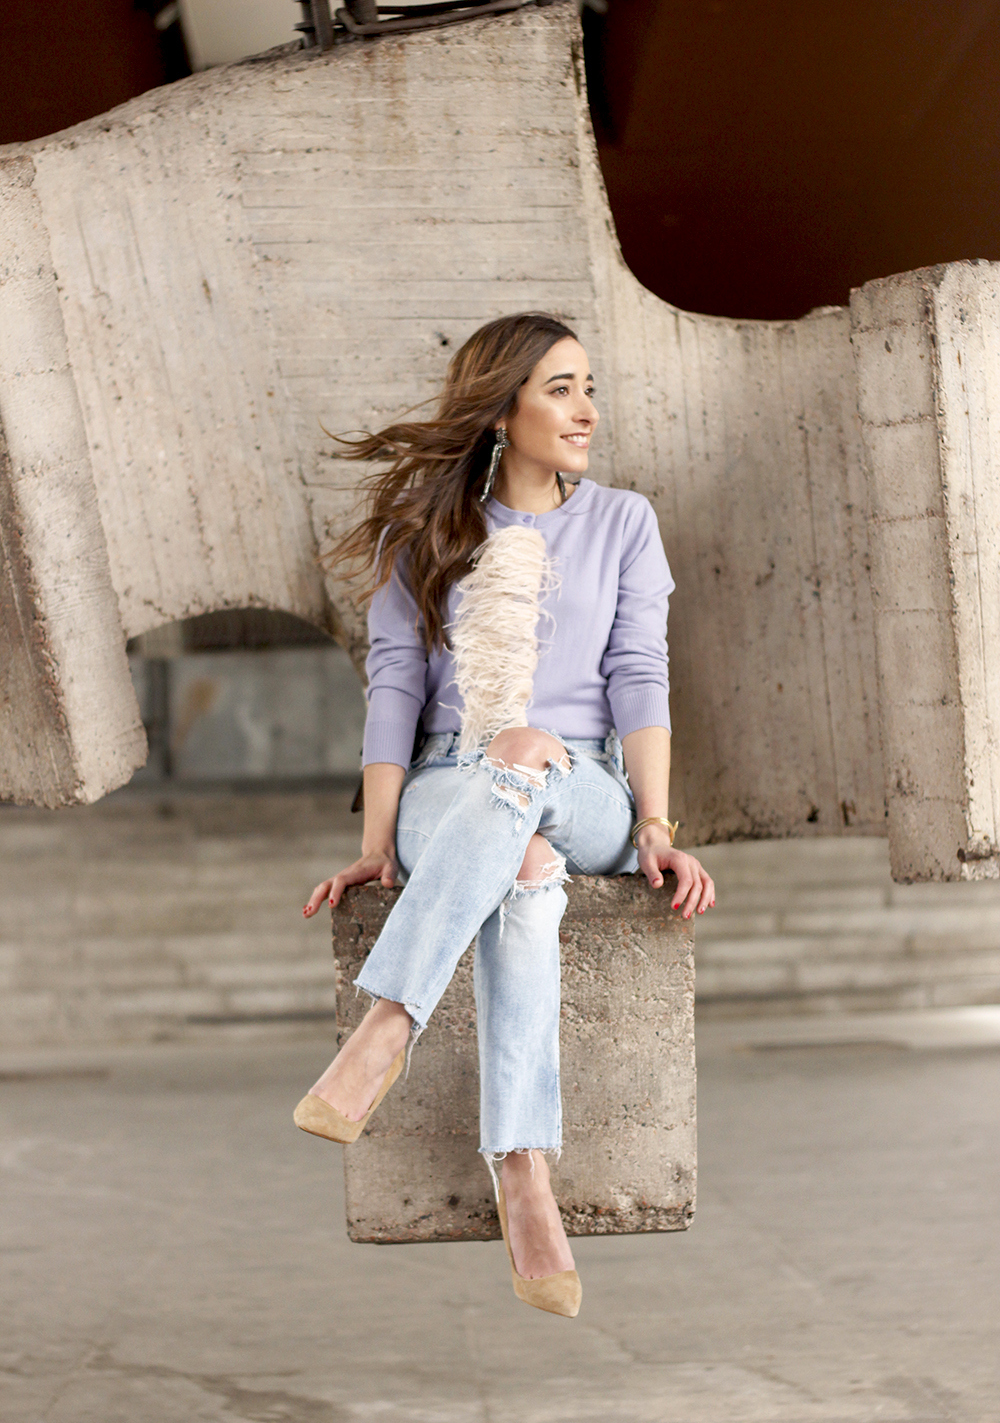 lavender sweater ripped jeans gucci bag nude heels casual street style casual outfit 201913